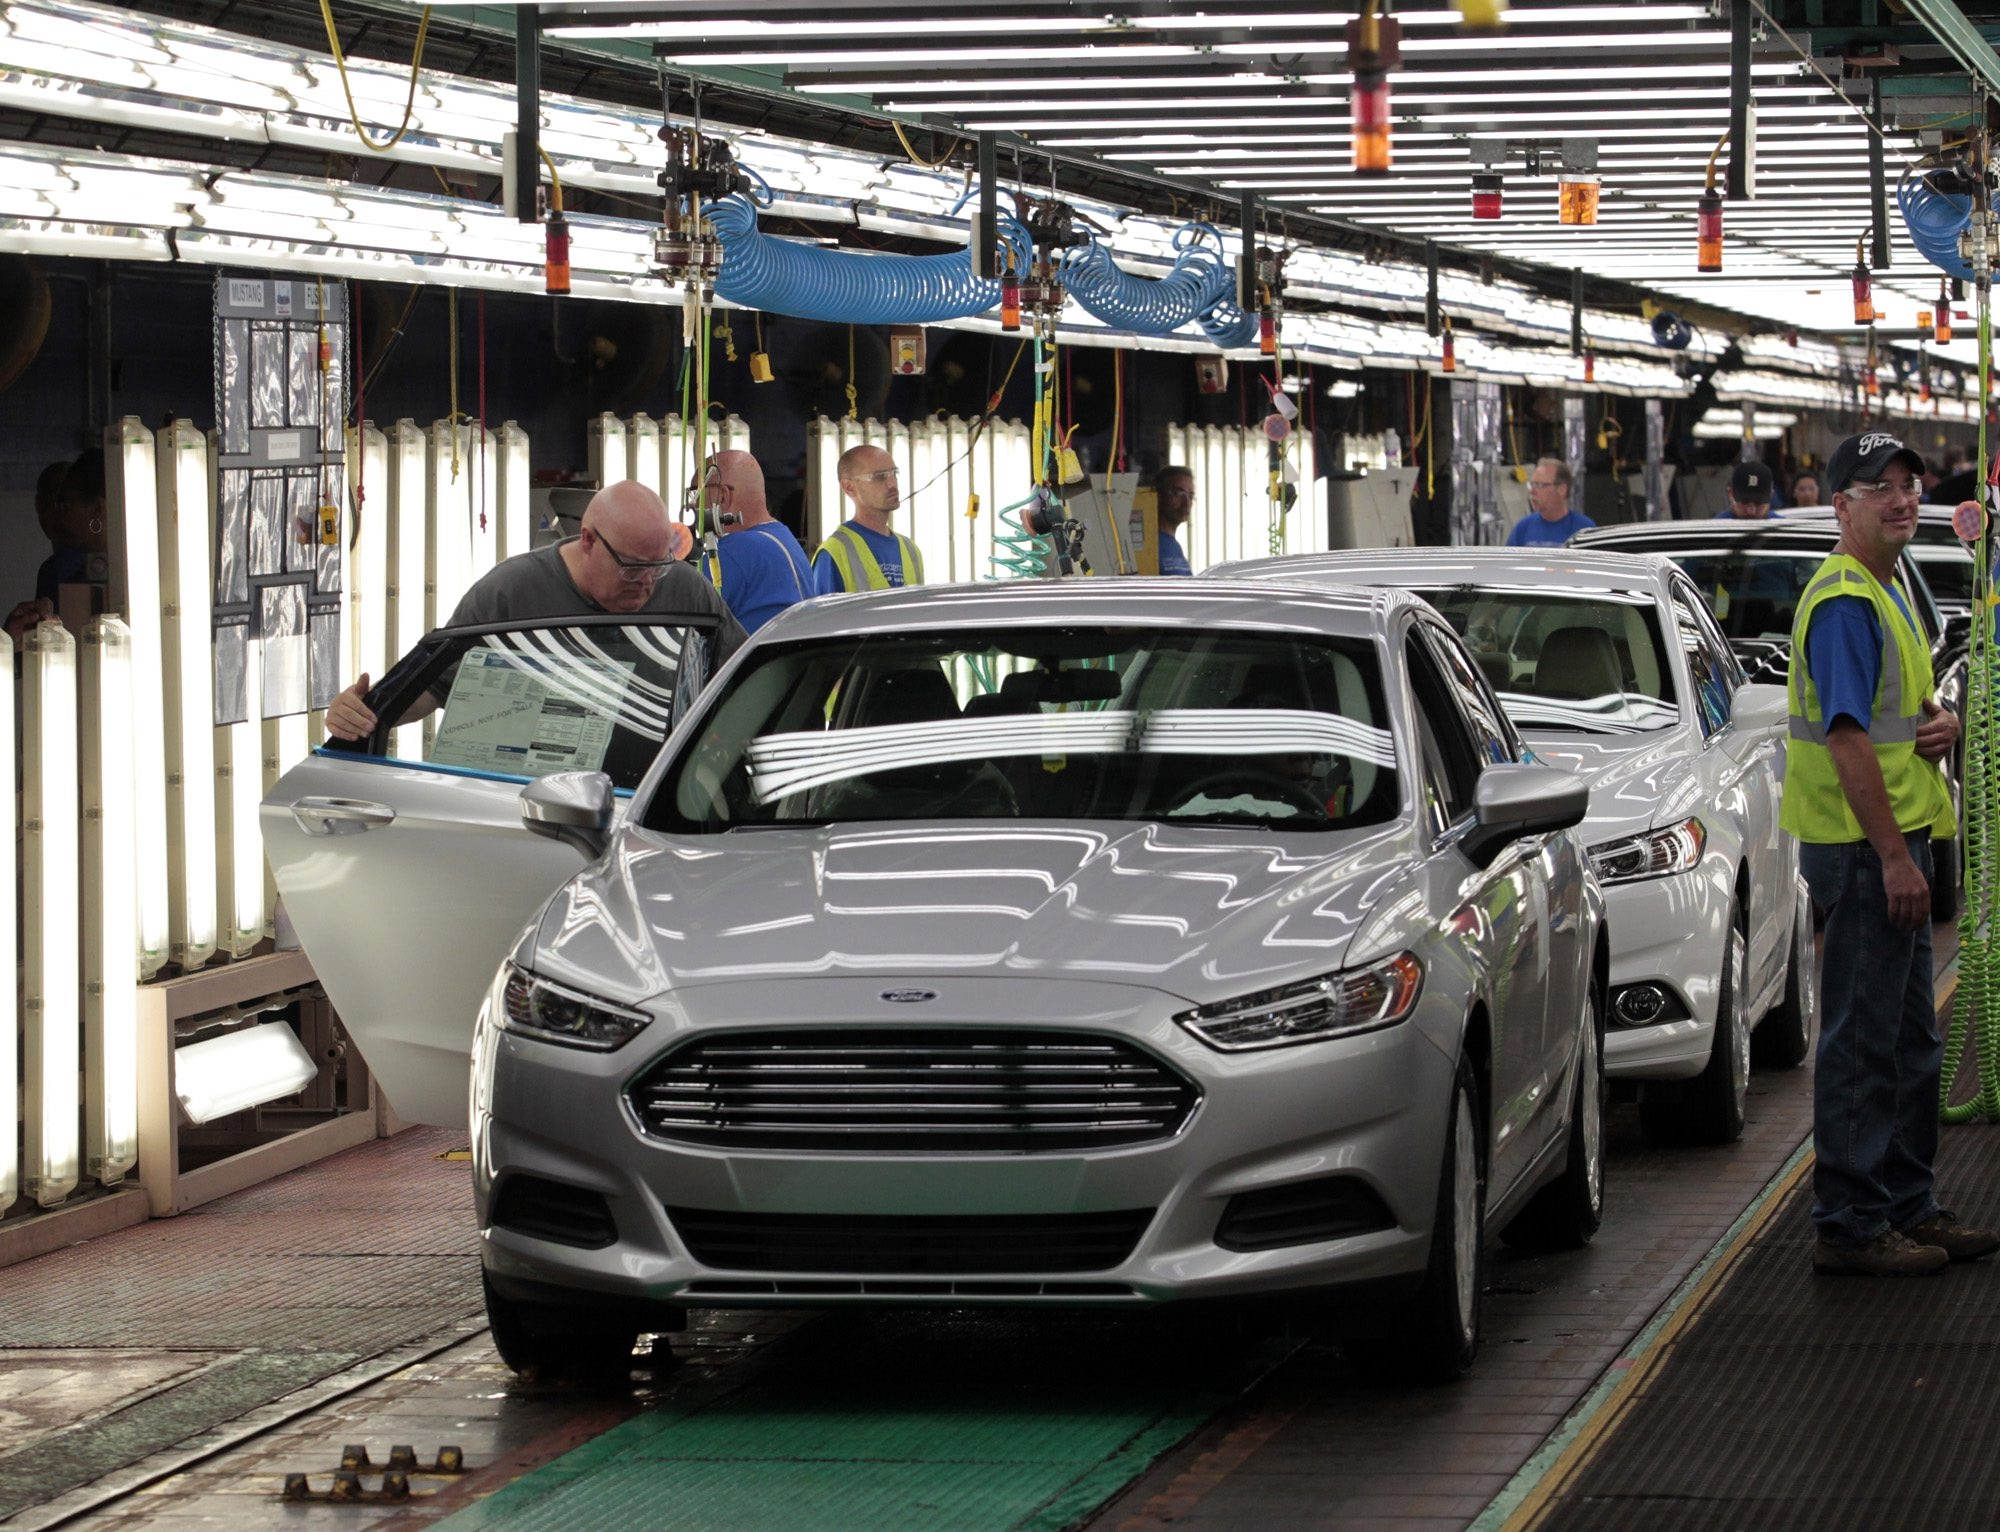 Workers at the Ford plant in Flat Rock, Mich., assemble on 2014 Ford Fusions, one of the vehicles helping to bring new life to U.S. fleet sales.